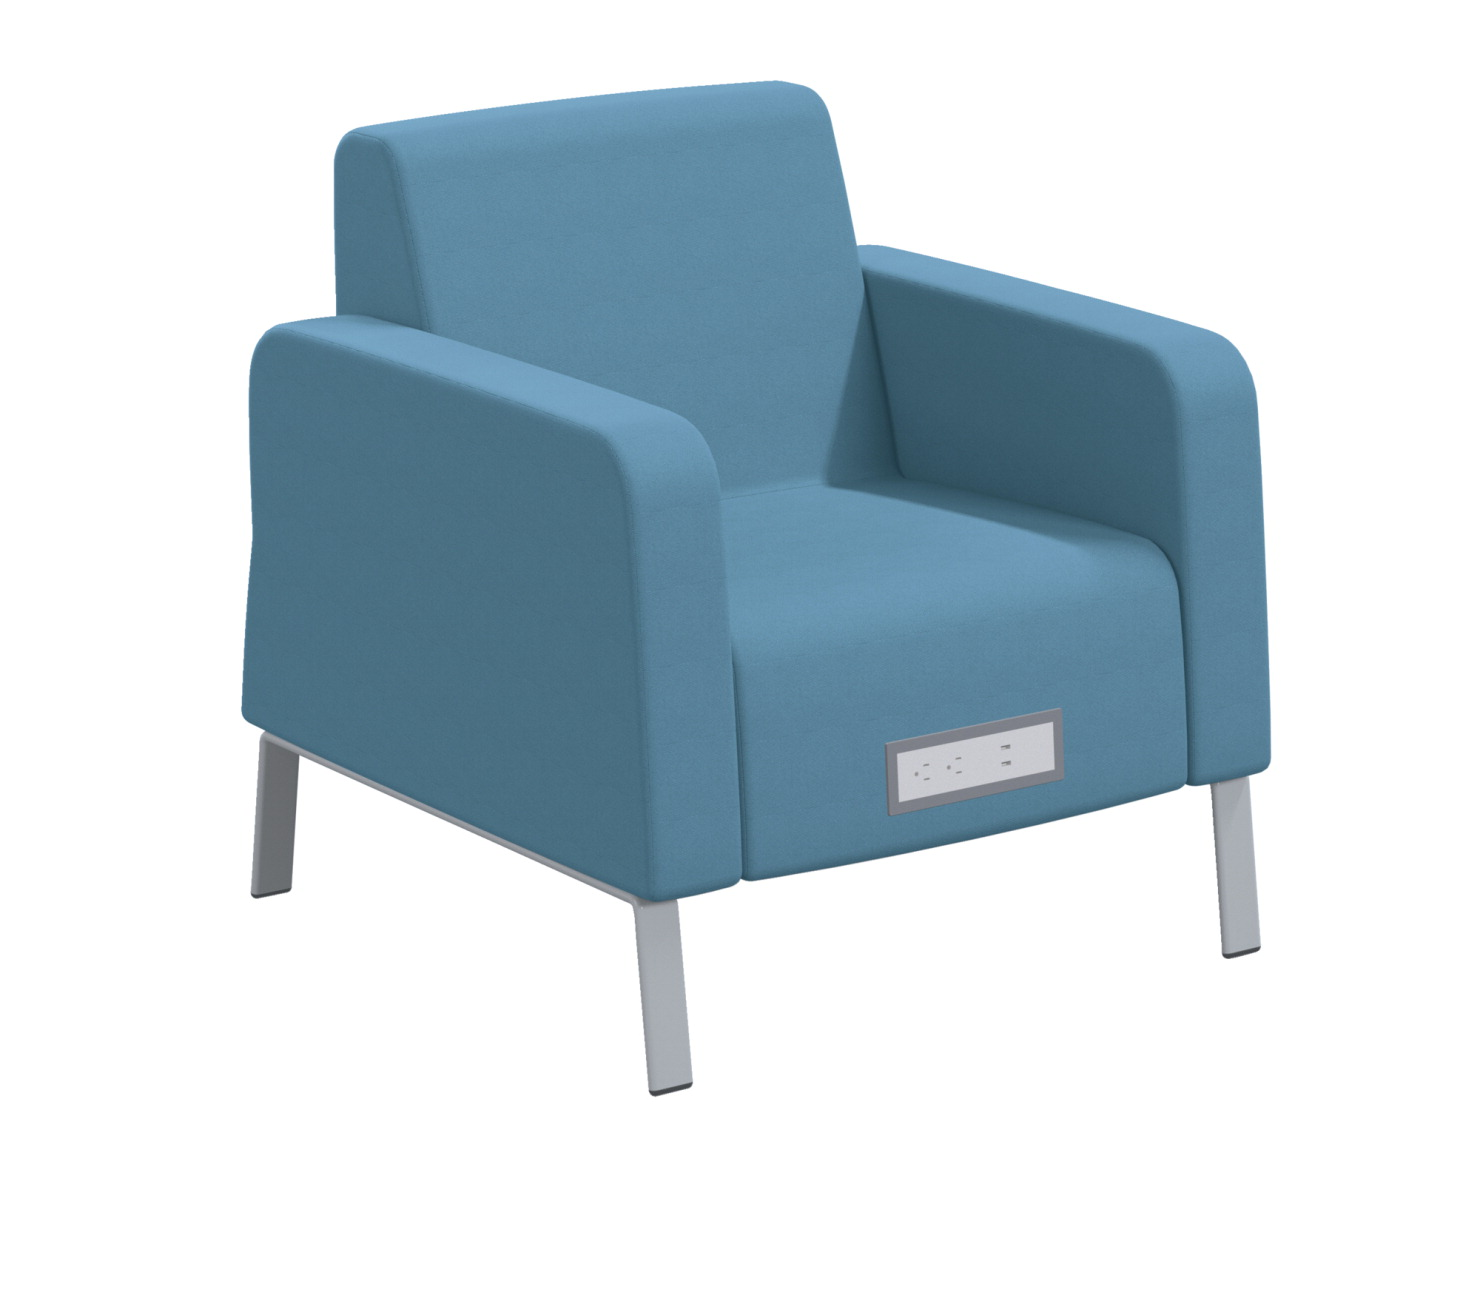 Classroom Select Soft Seating Arm Chair, Power Flat Front, 32 x 32 x 34 Inches, Various Options